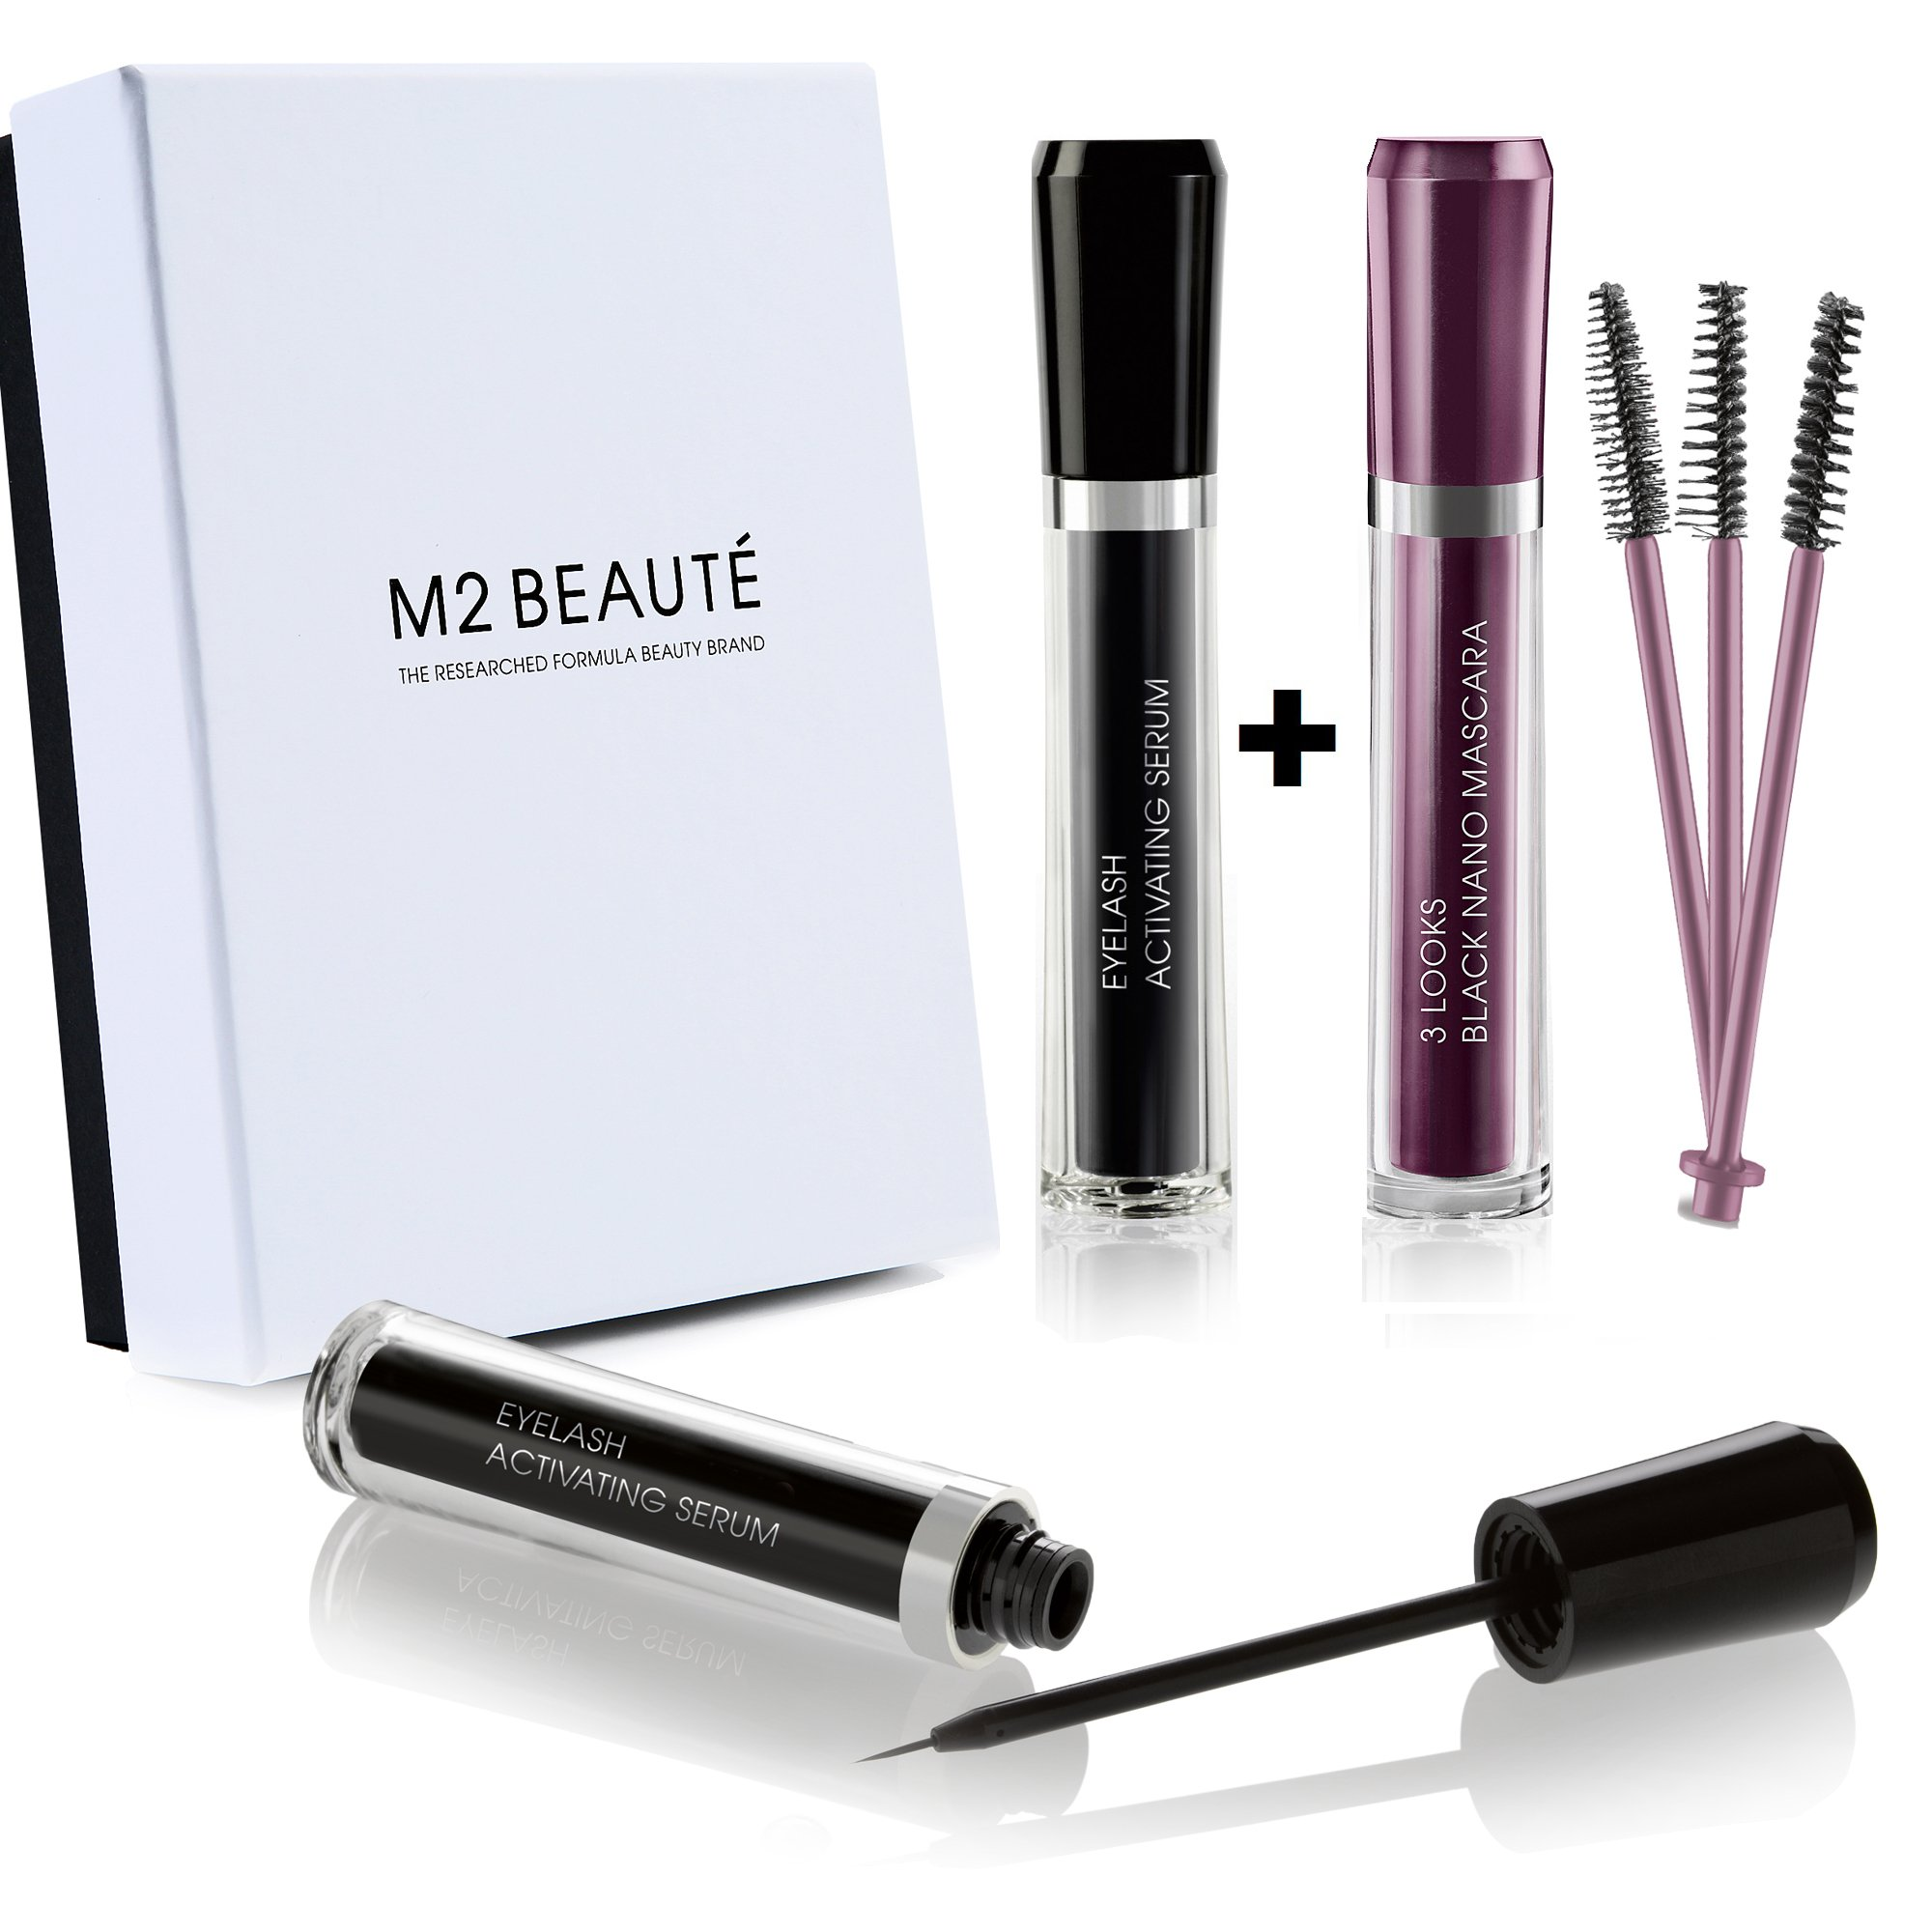 M2Beaute Mascara & Eyelash Activating Serum 5ml - 3 LOOKS BLACK NANO MASCARA with 5ml Eyelash growth Serum & M2Beaute Gift Box by M2Beaute (Image #1)